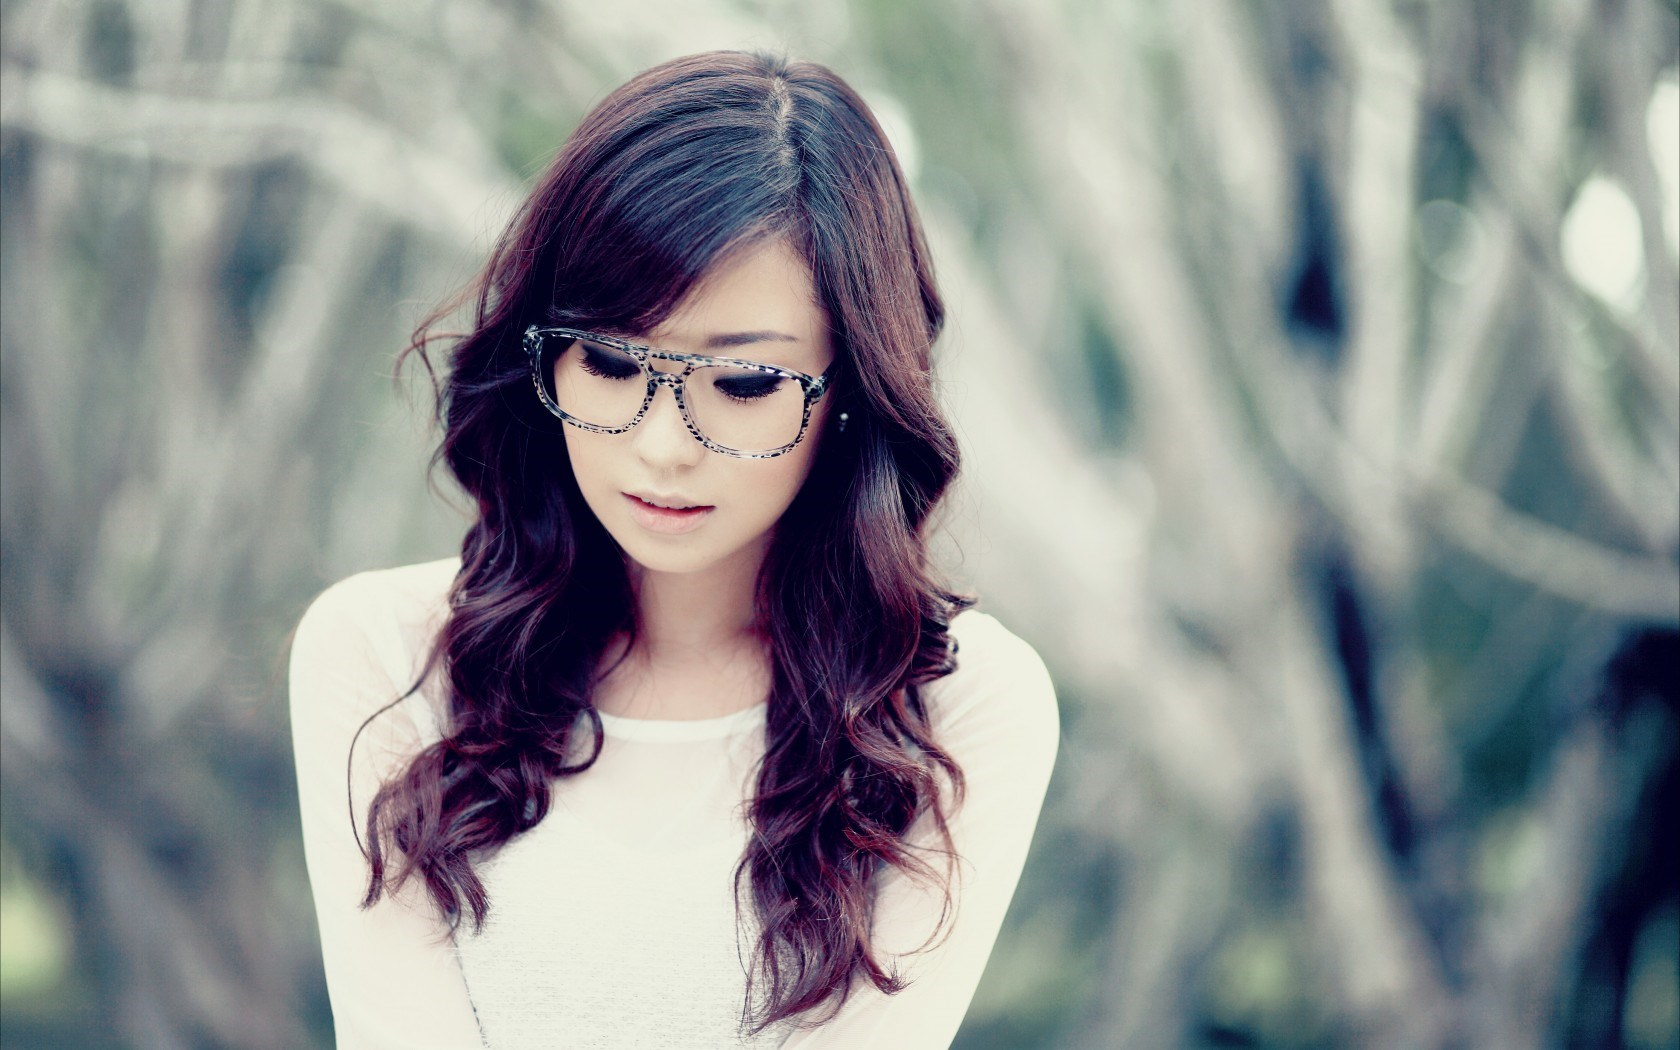 Asian Girls Cute High Definition Backgrounds - Asian Models With Glasses , HD Wallpaper & Backgrounds